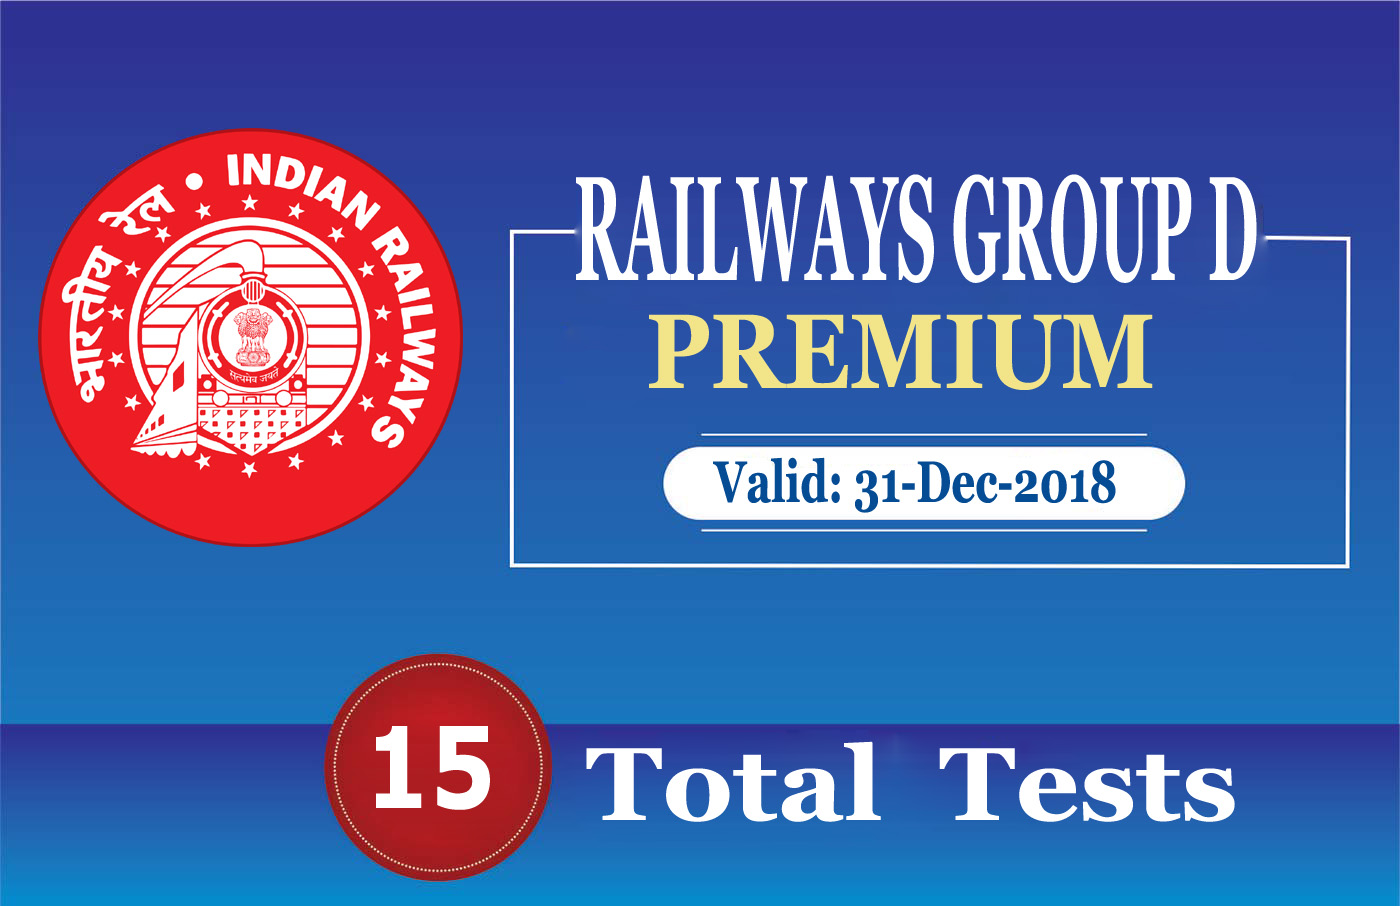 RAILWAYS GROUP D PREMIUM